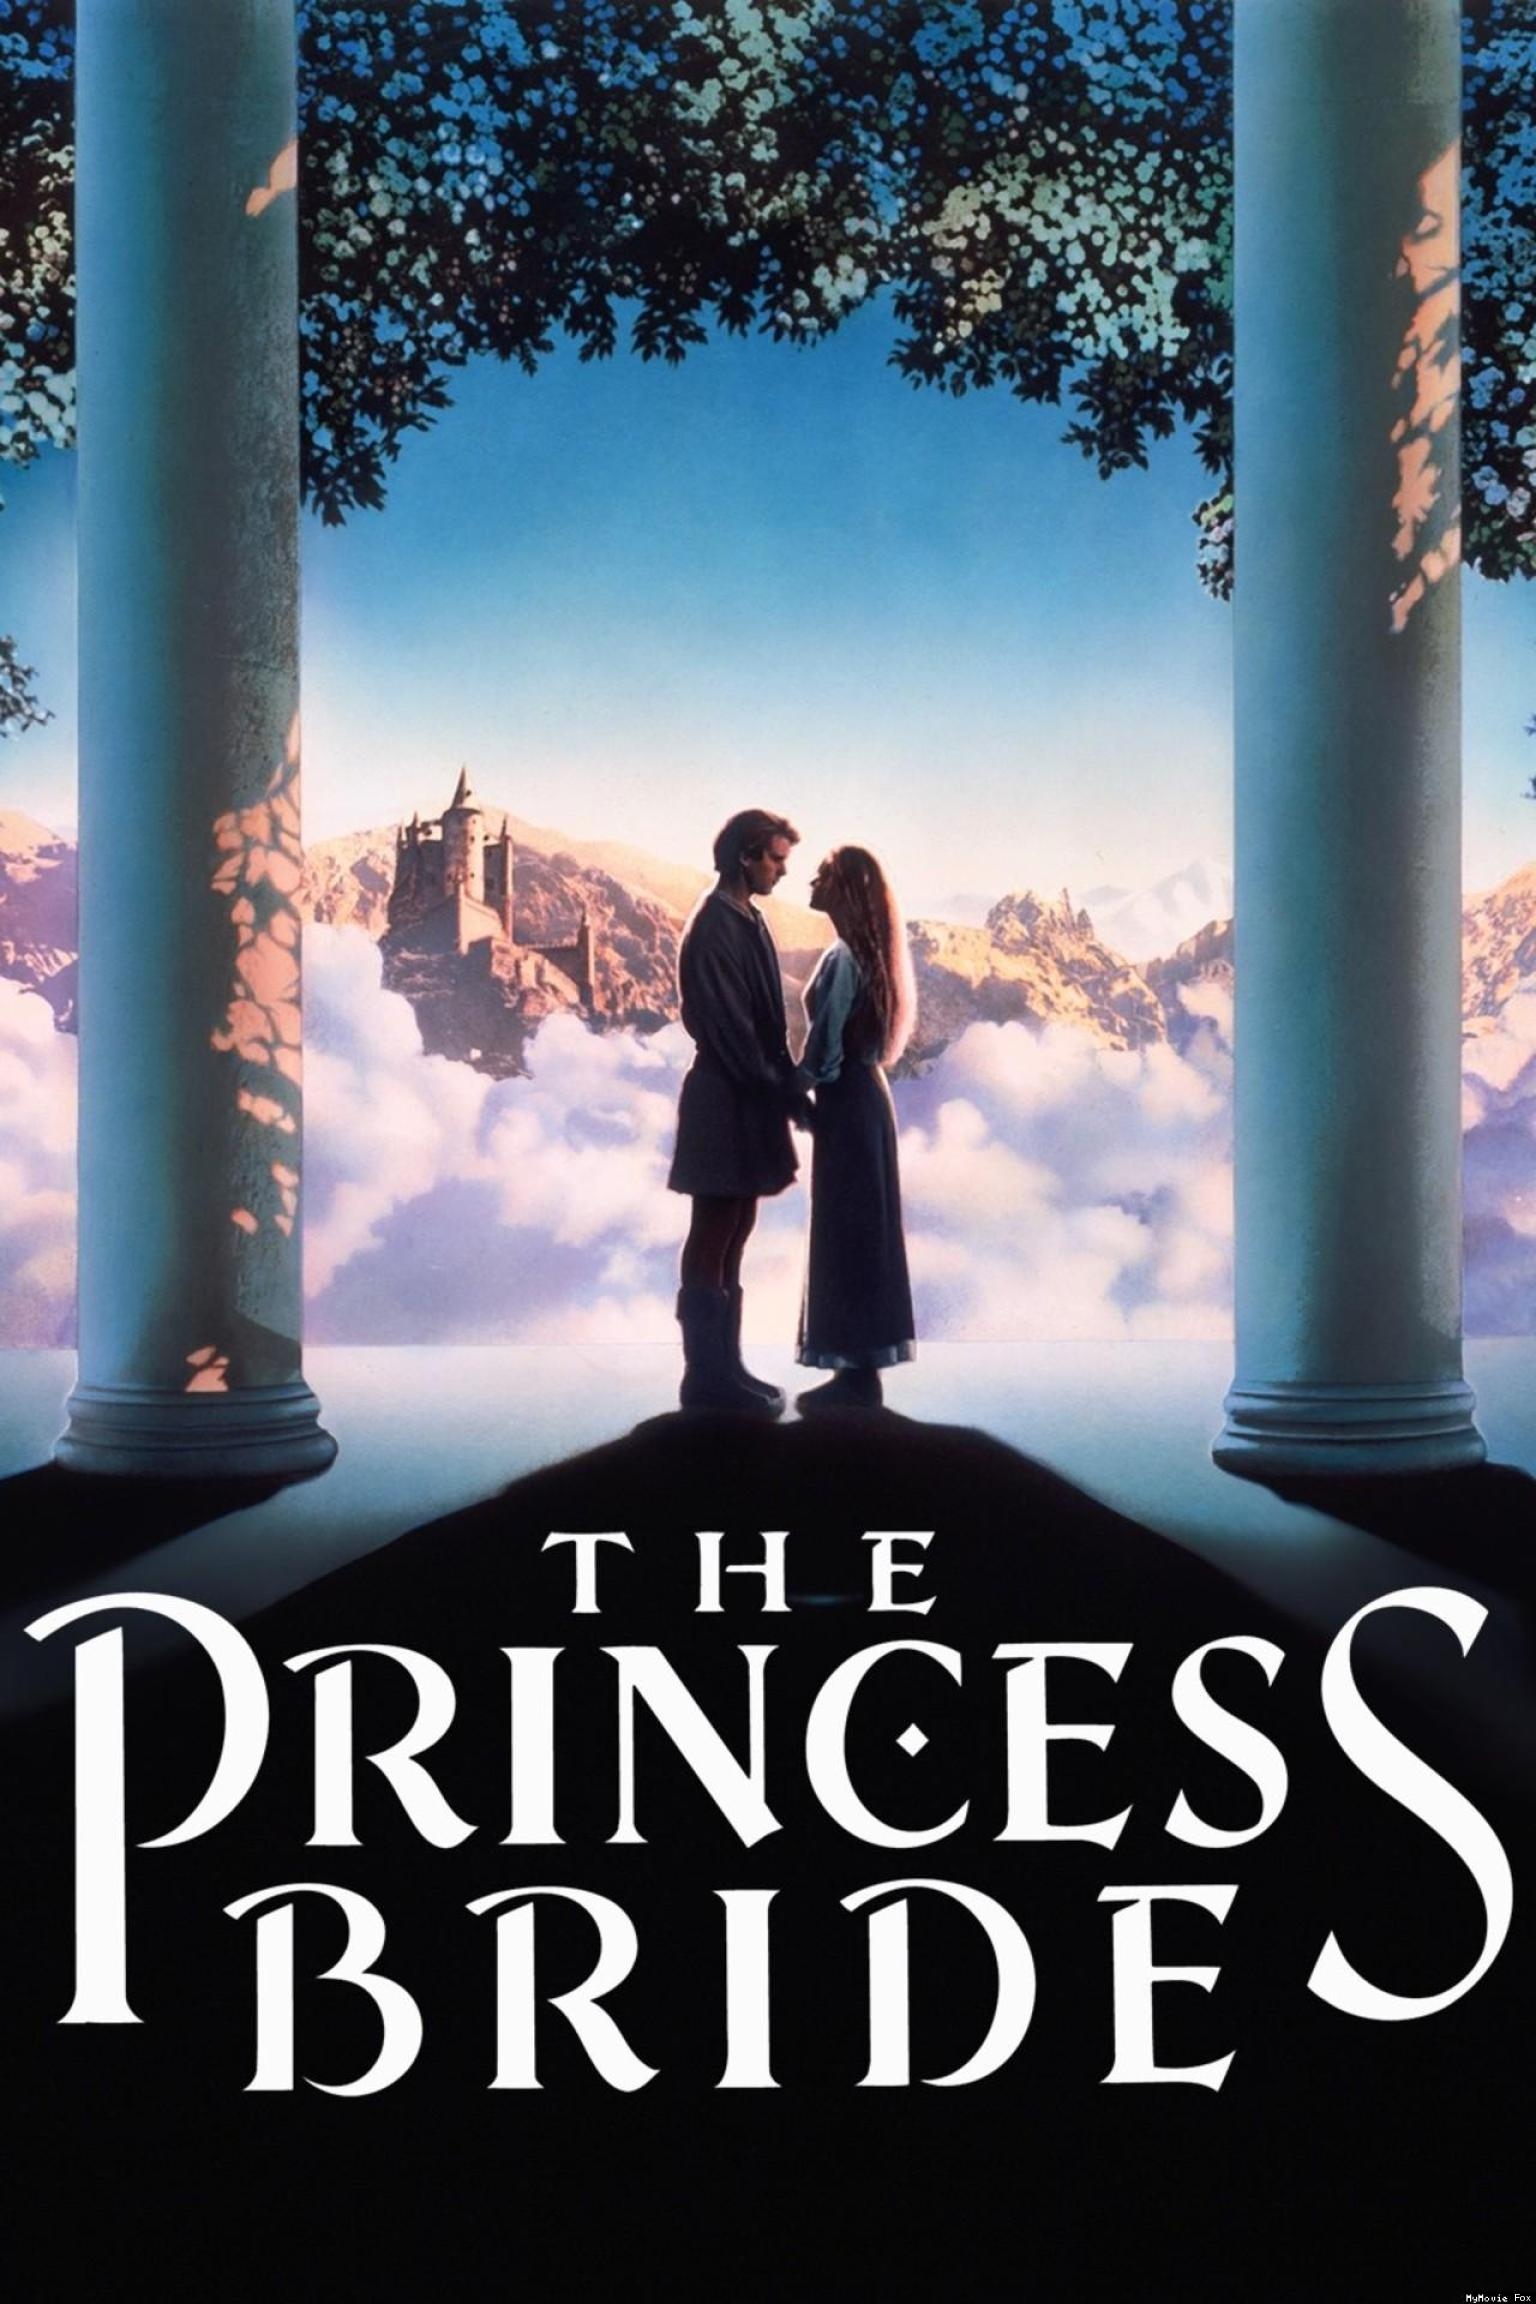 Princess Bride 25th Anniversary Screening Planned For